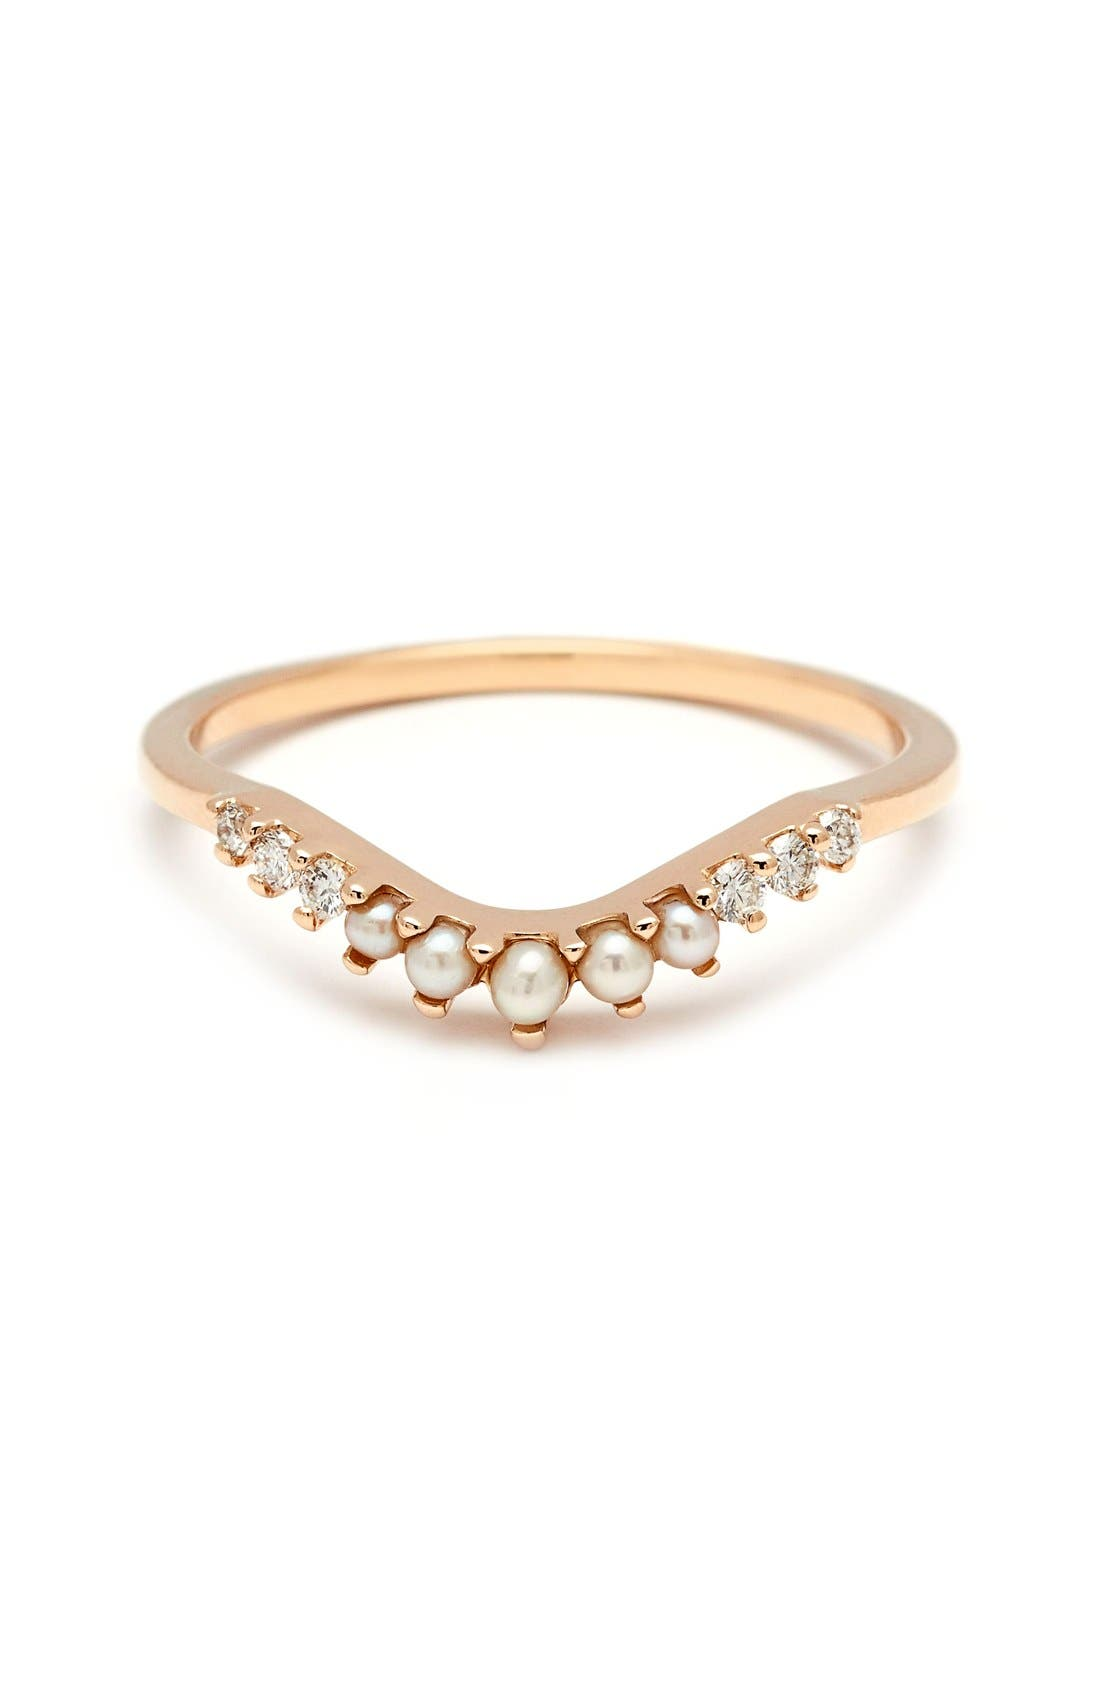 Alternate Image 1 Selected - Anna Sheffield 'Petit Tiara Curve' Diamond & Seed Pearl Ring